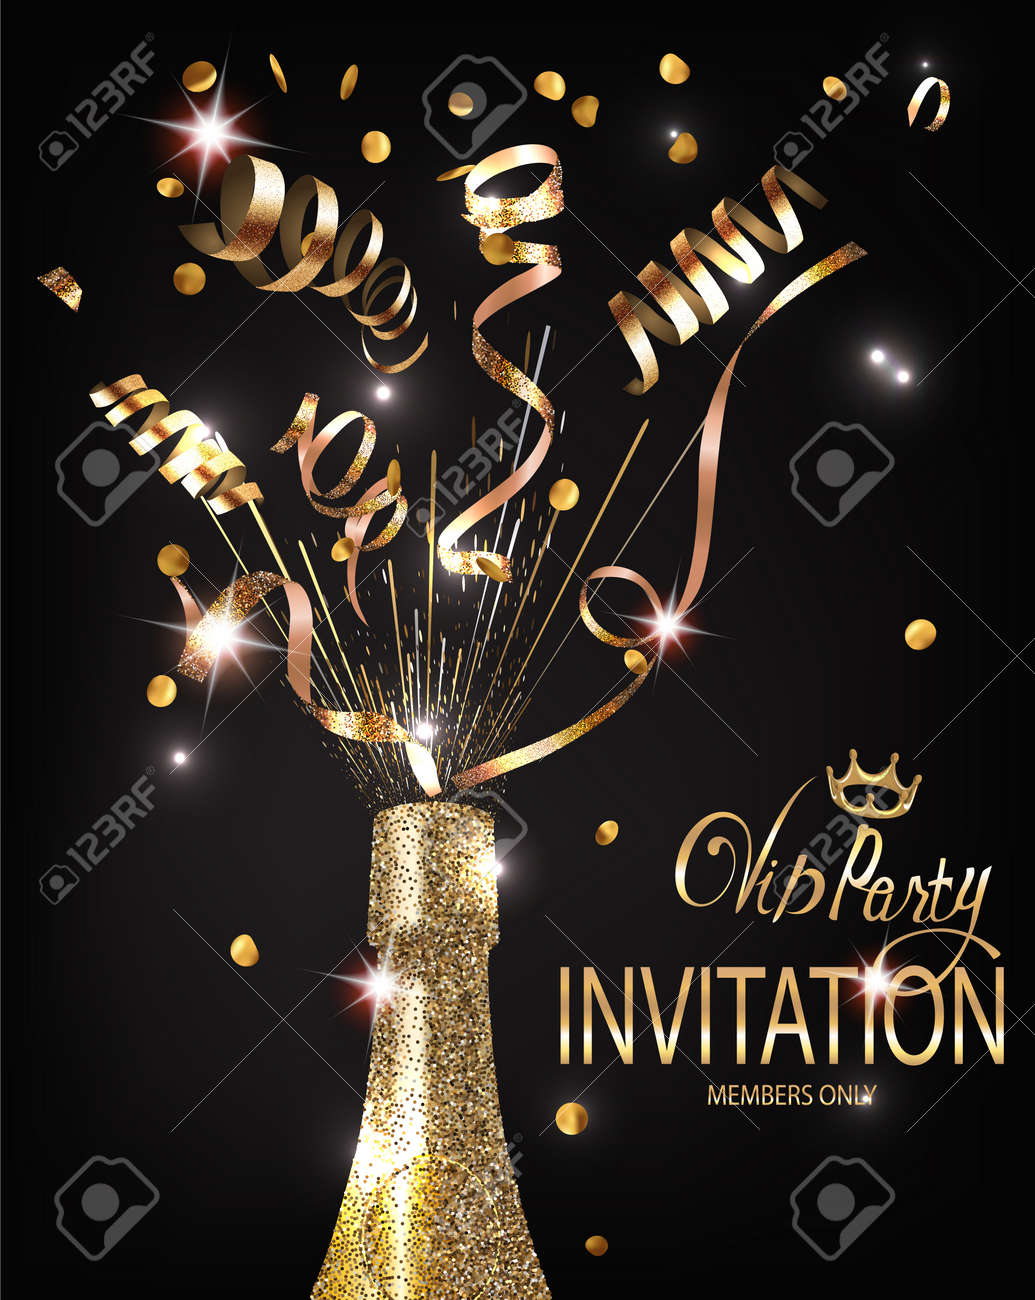 VIP Party Invitation Shiny Banner WITH GOLD TEXTURED SERPENTINE